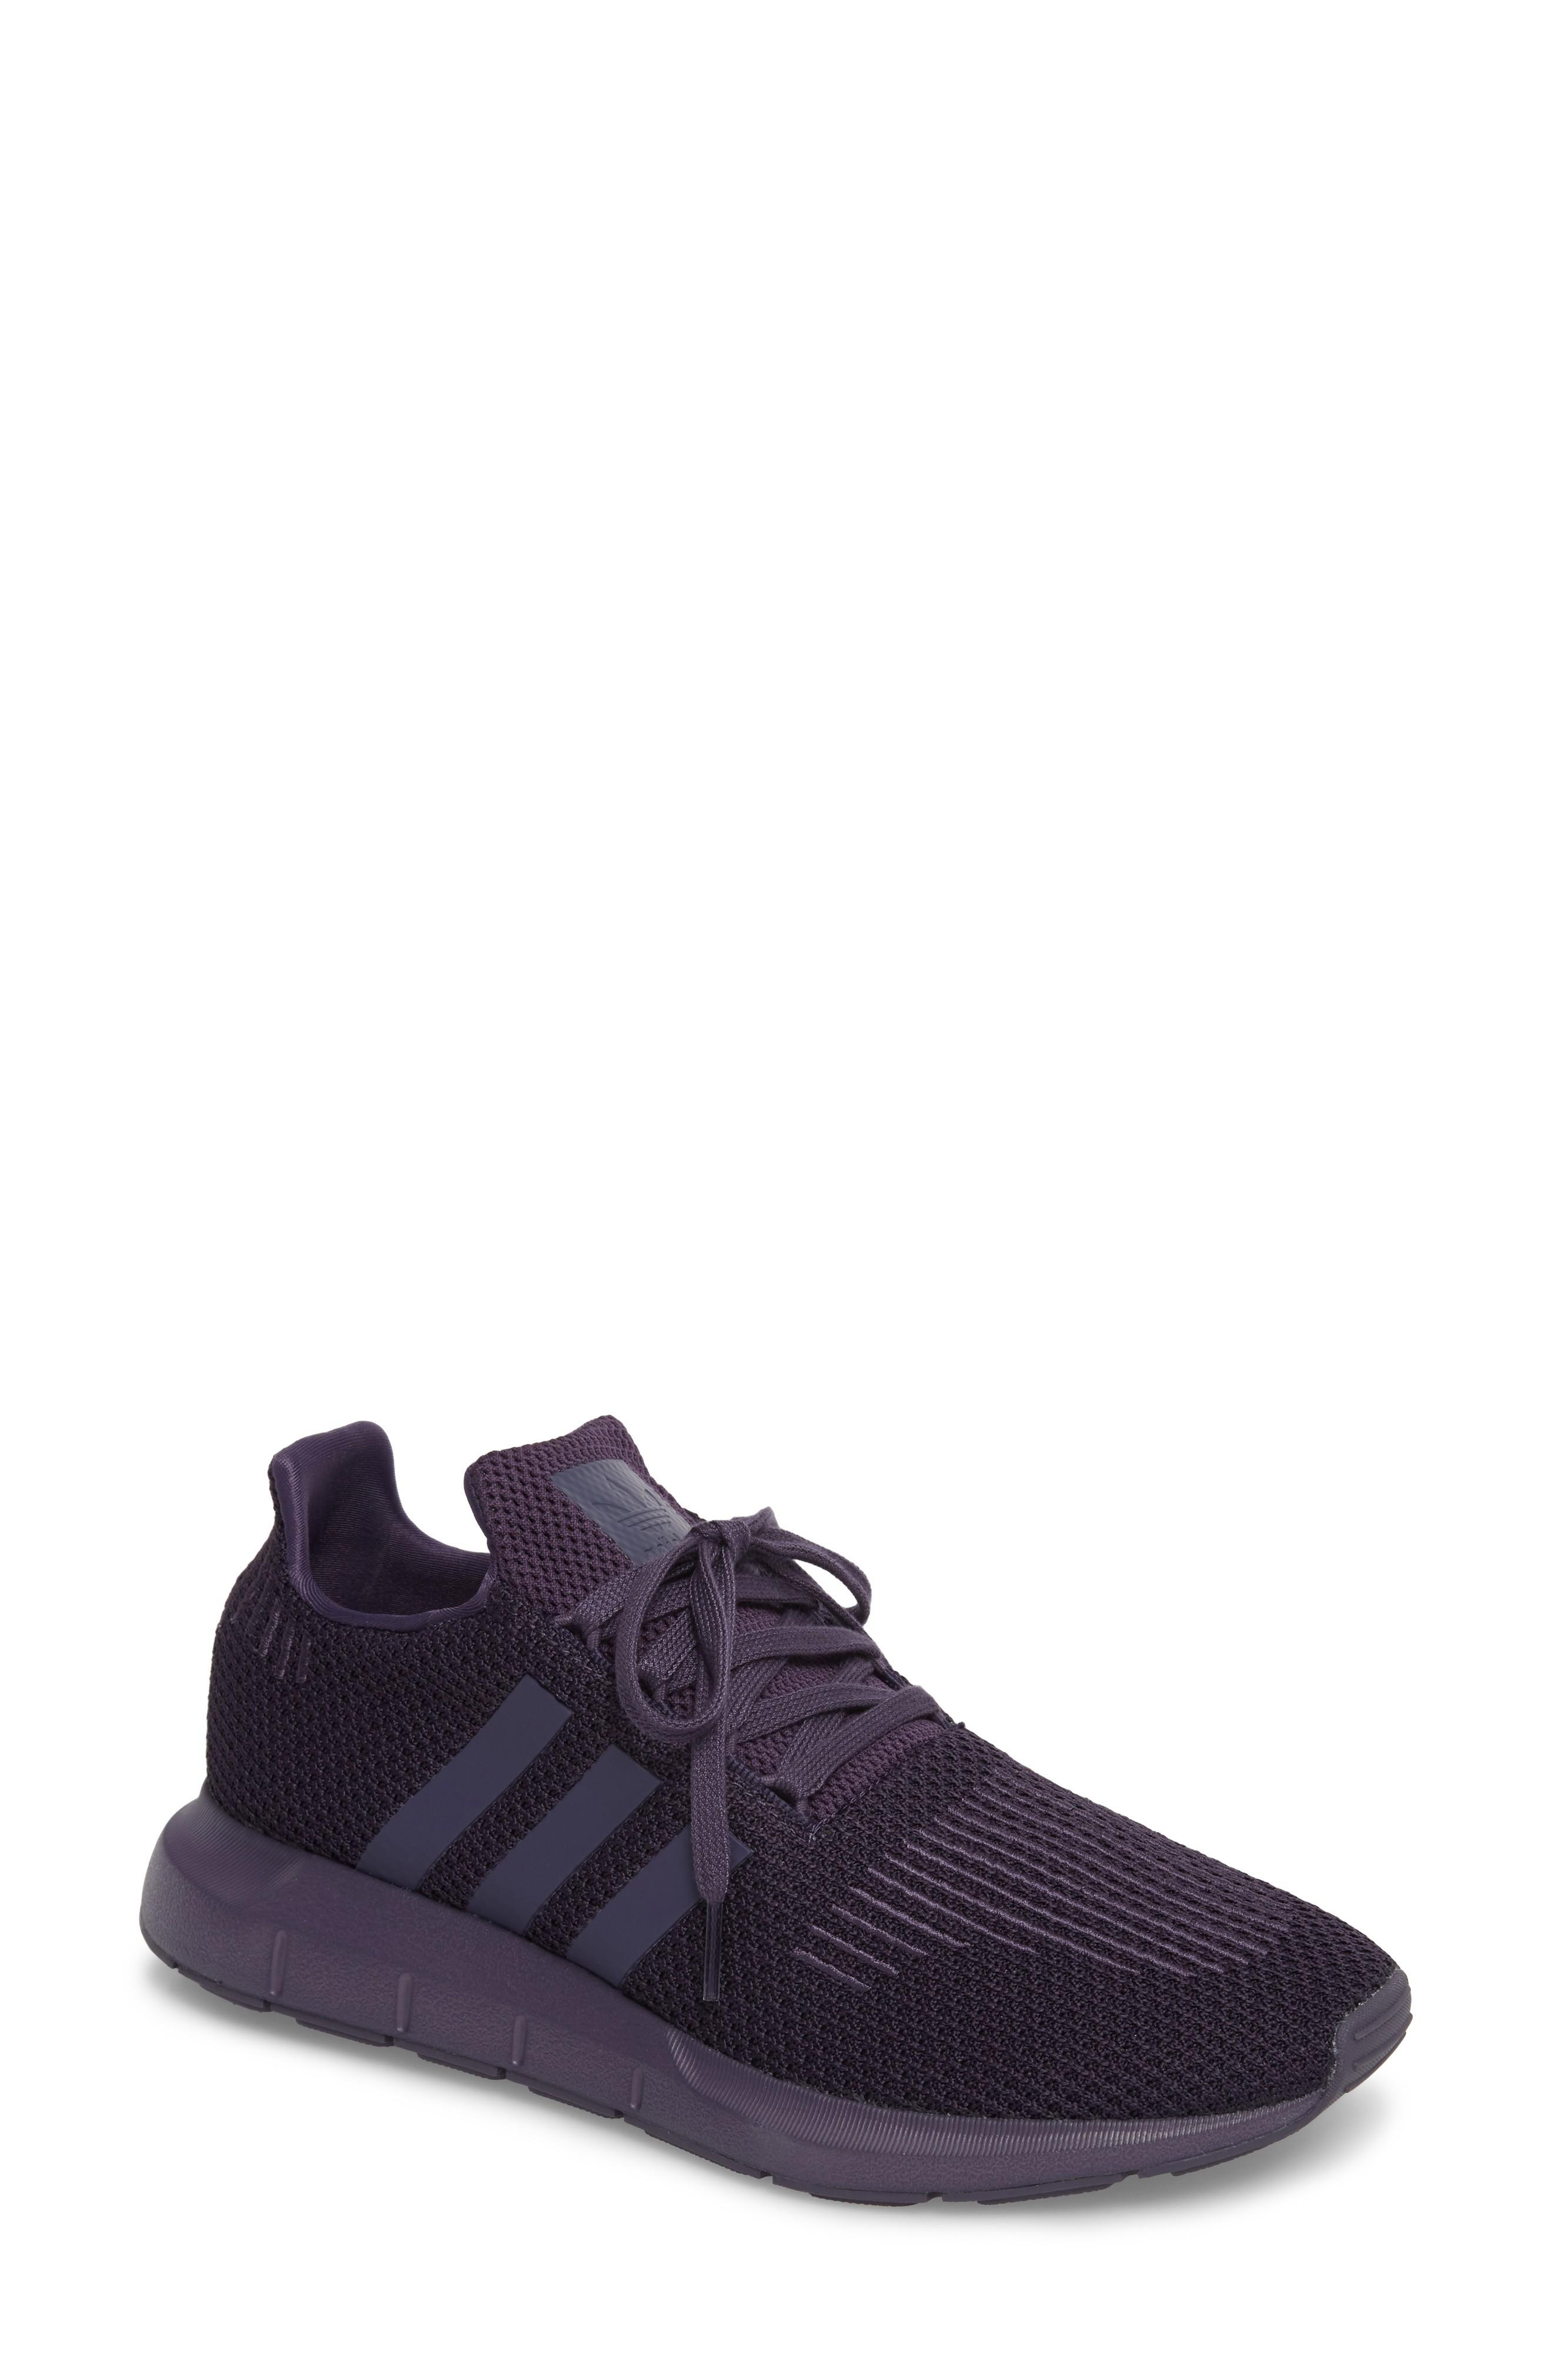 08257bd198d9a2 Adidas Originals Women s Swift Run Lace Up Athletic Sneakers In ...